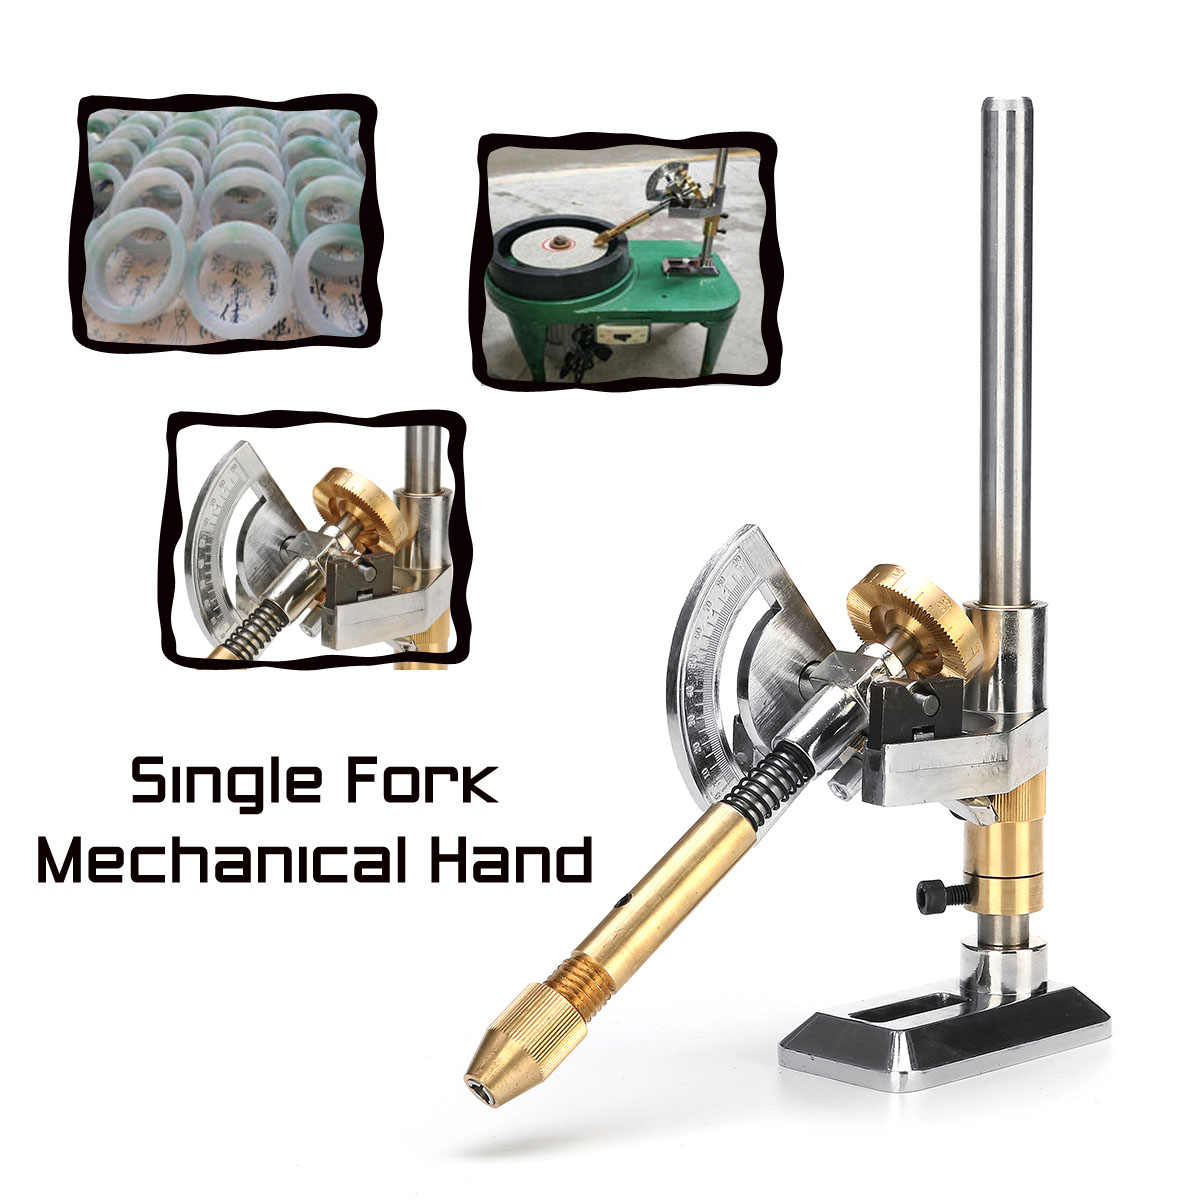 Jade Grinding Faceted Manipulator Gem Faceting Machine Jewel Angle Polisher Fork 12/24/36/48/60/72/84/96 Index Wheels Handle